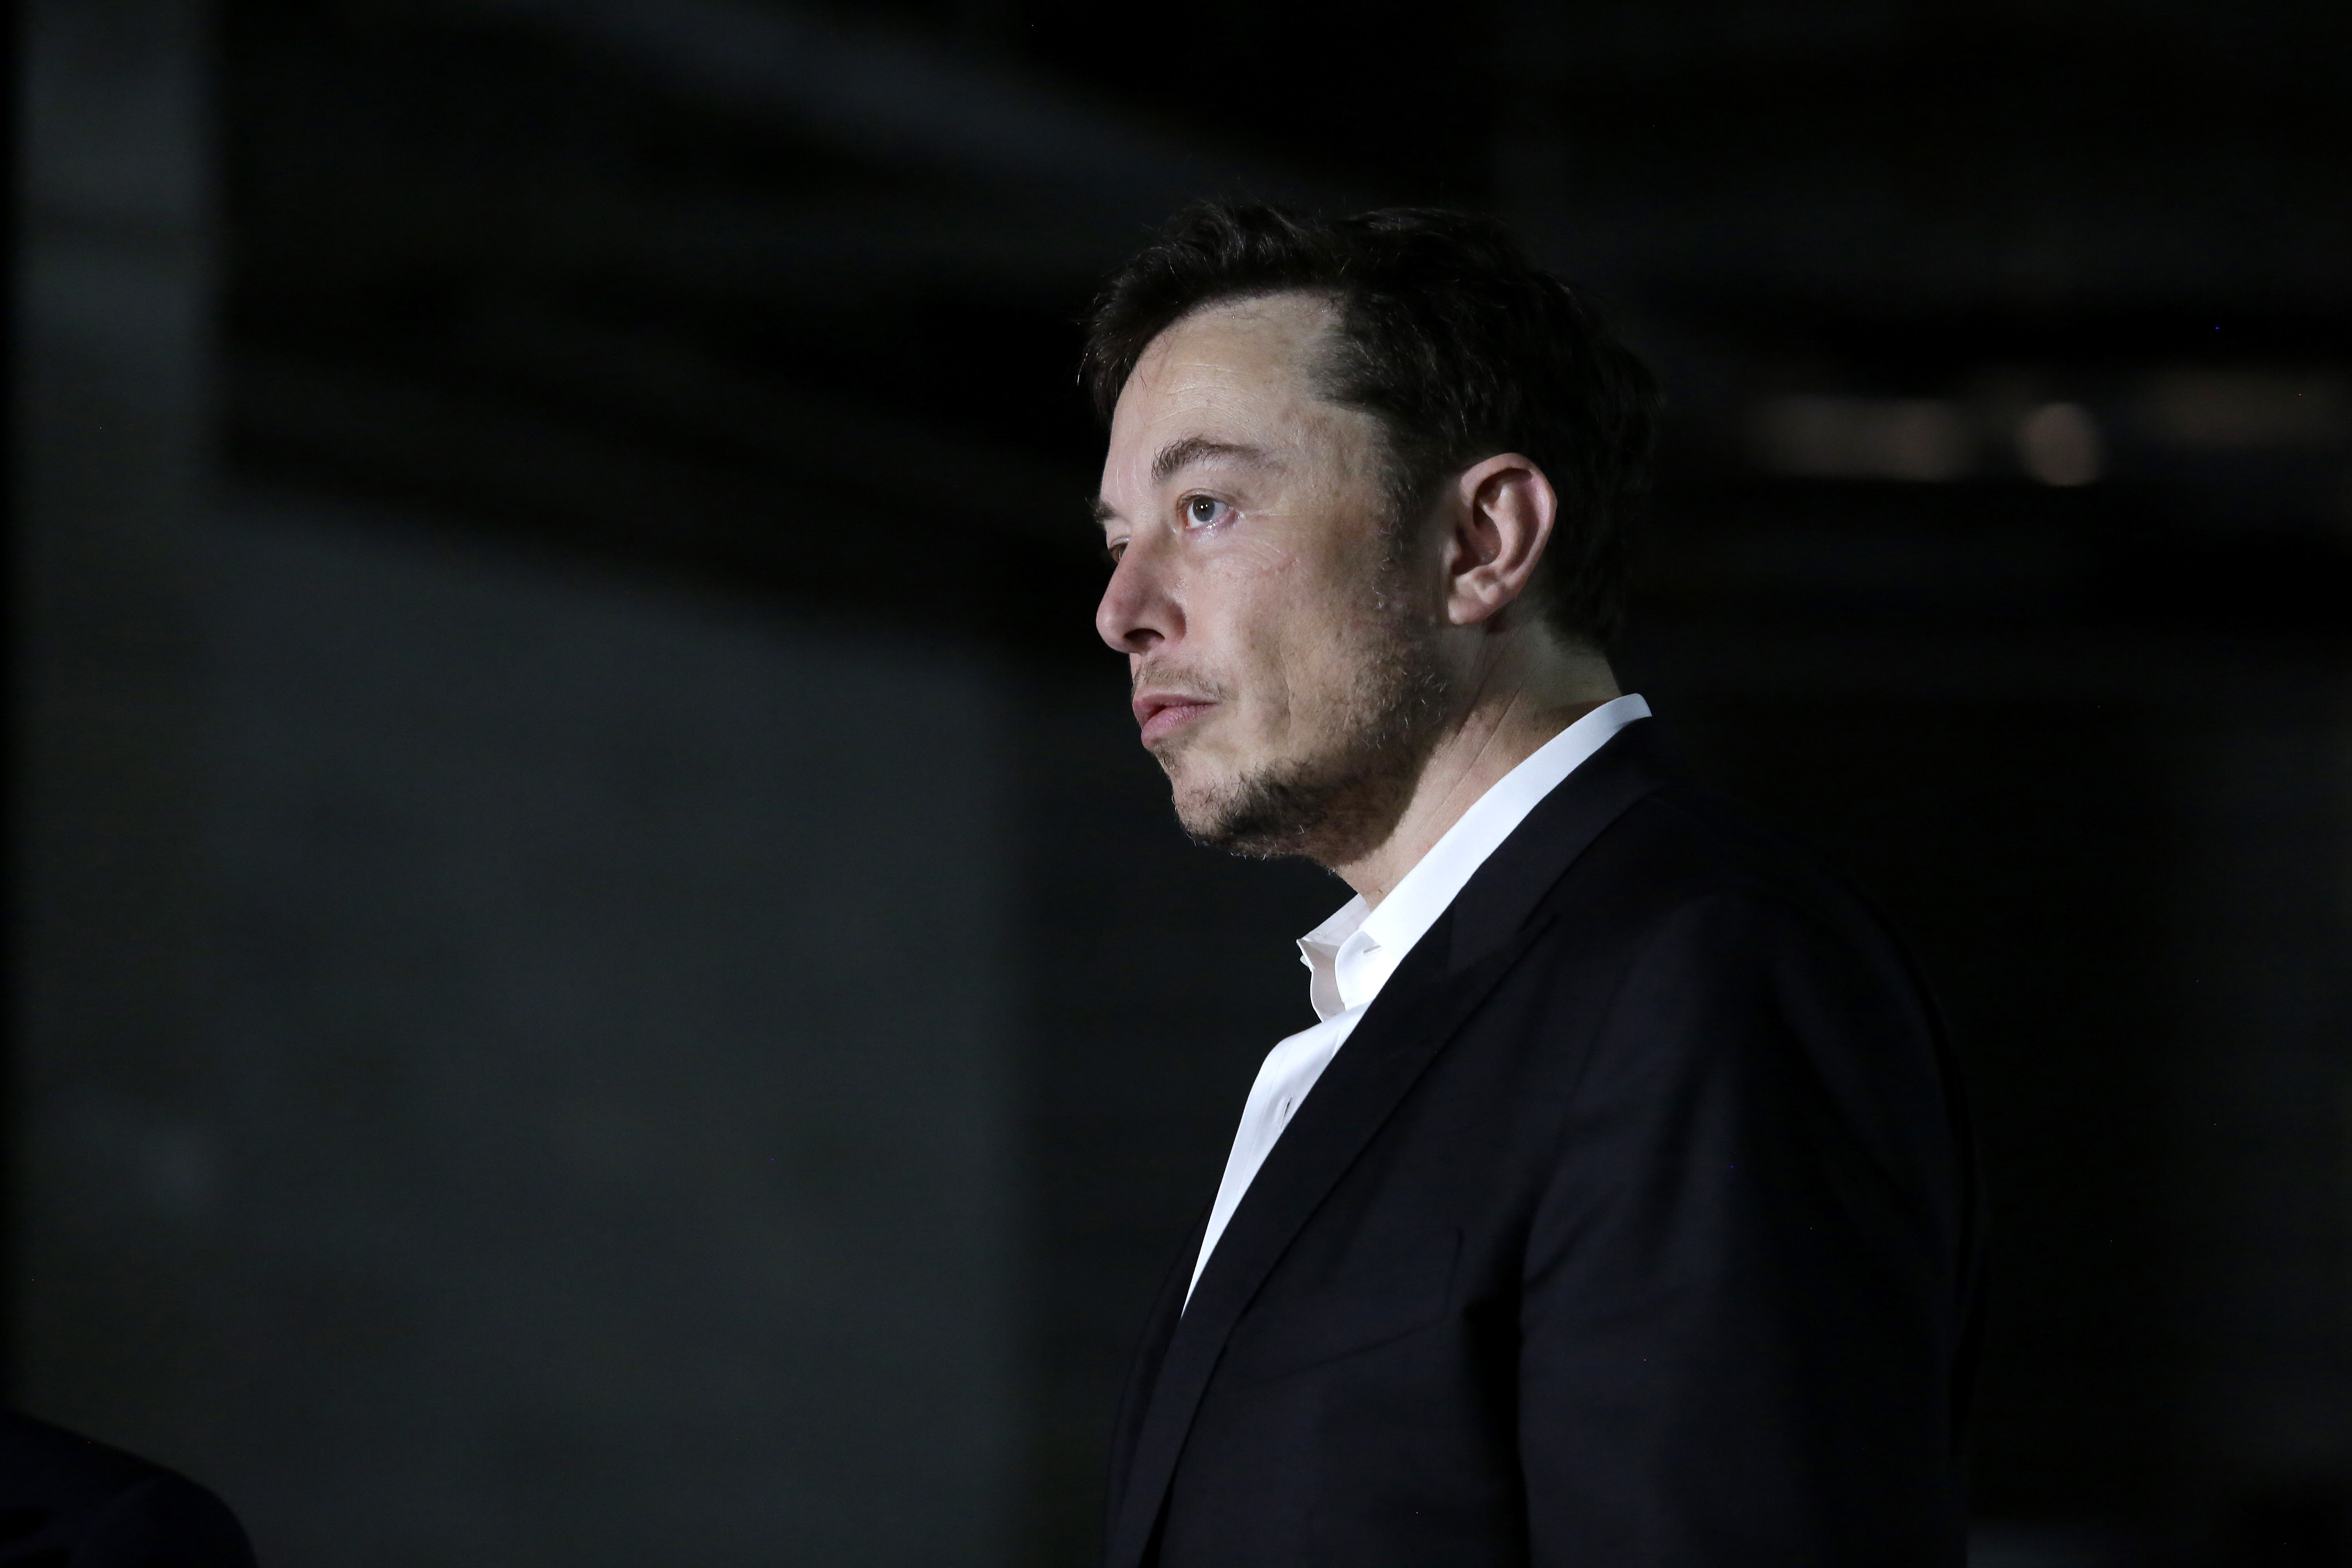 Musk emails alleged Tesla saboteur, 'You're a frightful human being'